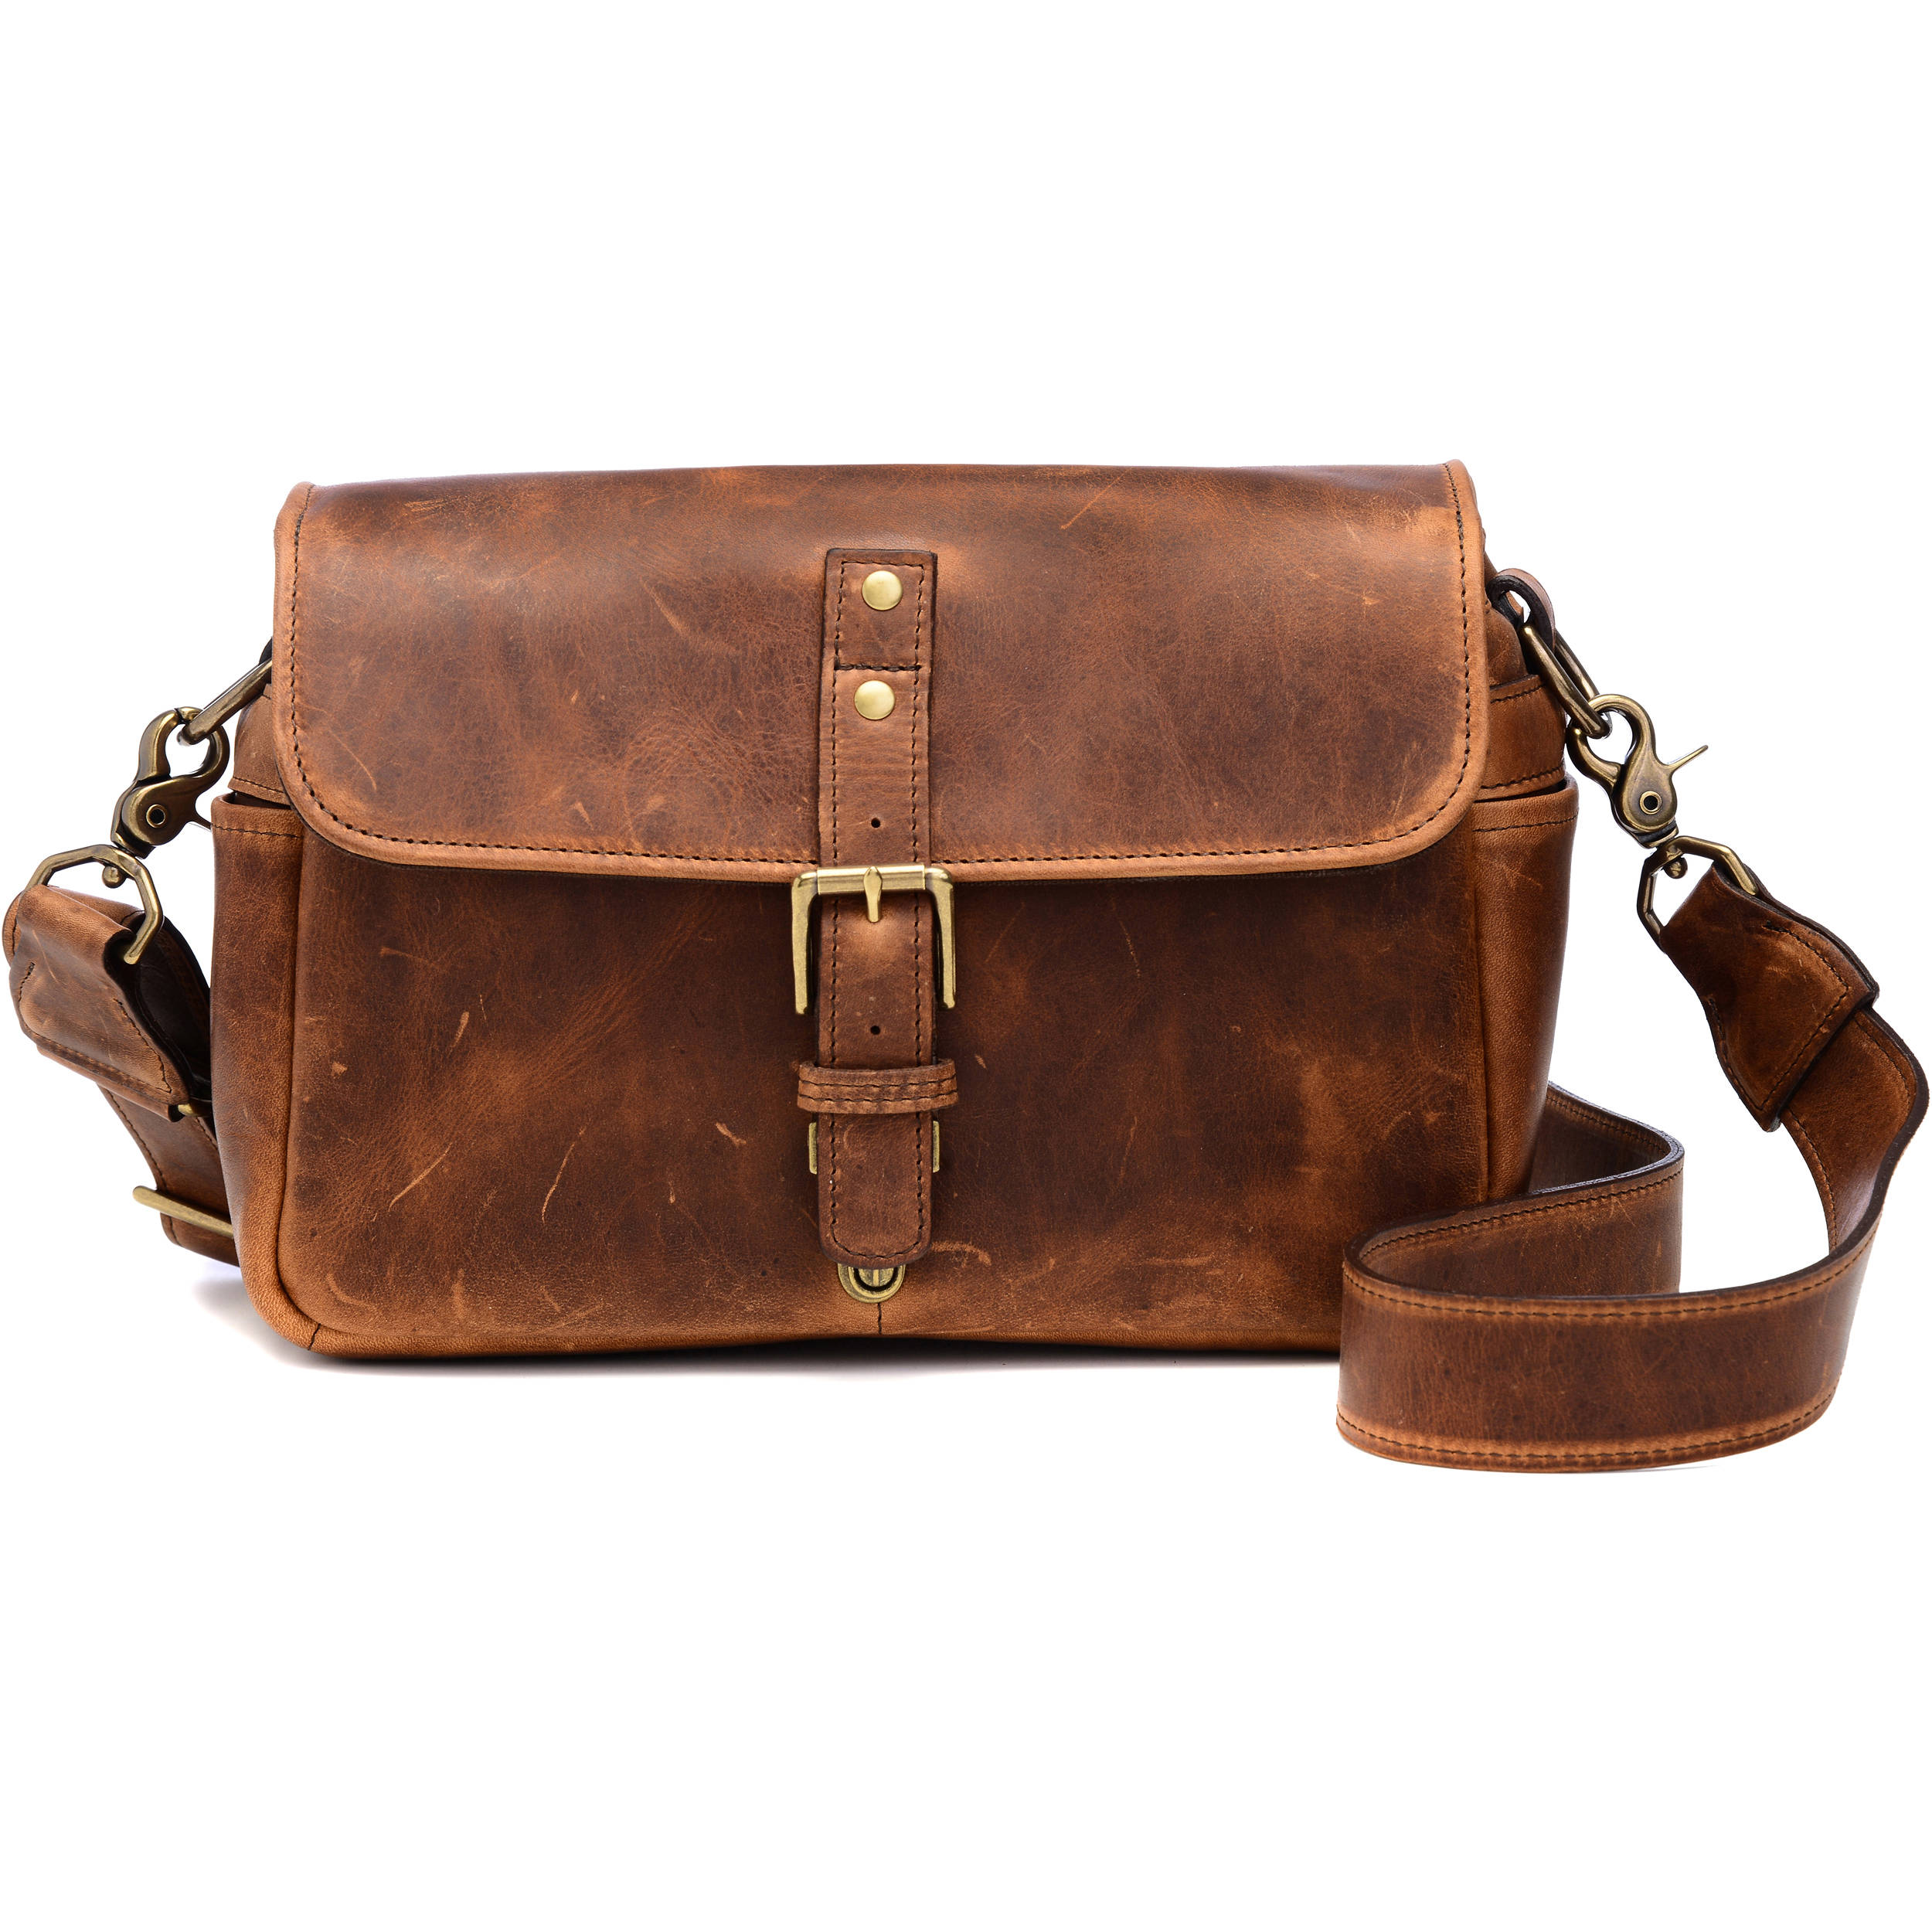 ONA Bowery Camera Bag (Leather, Antique Cognac) ONA5-014LBR B&H